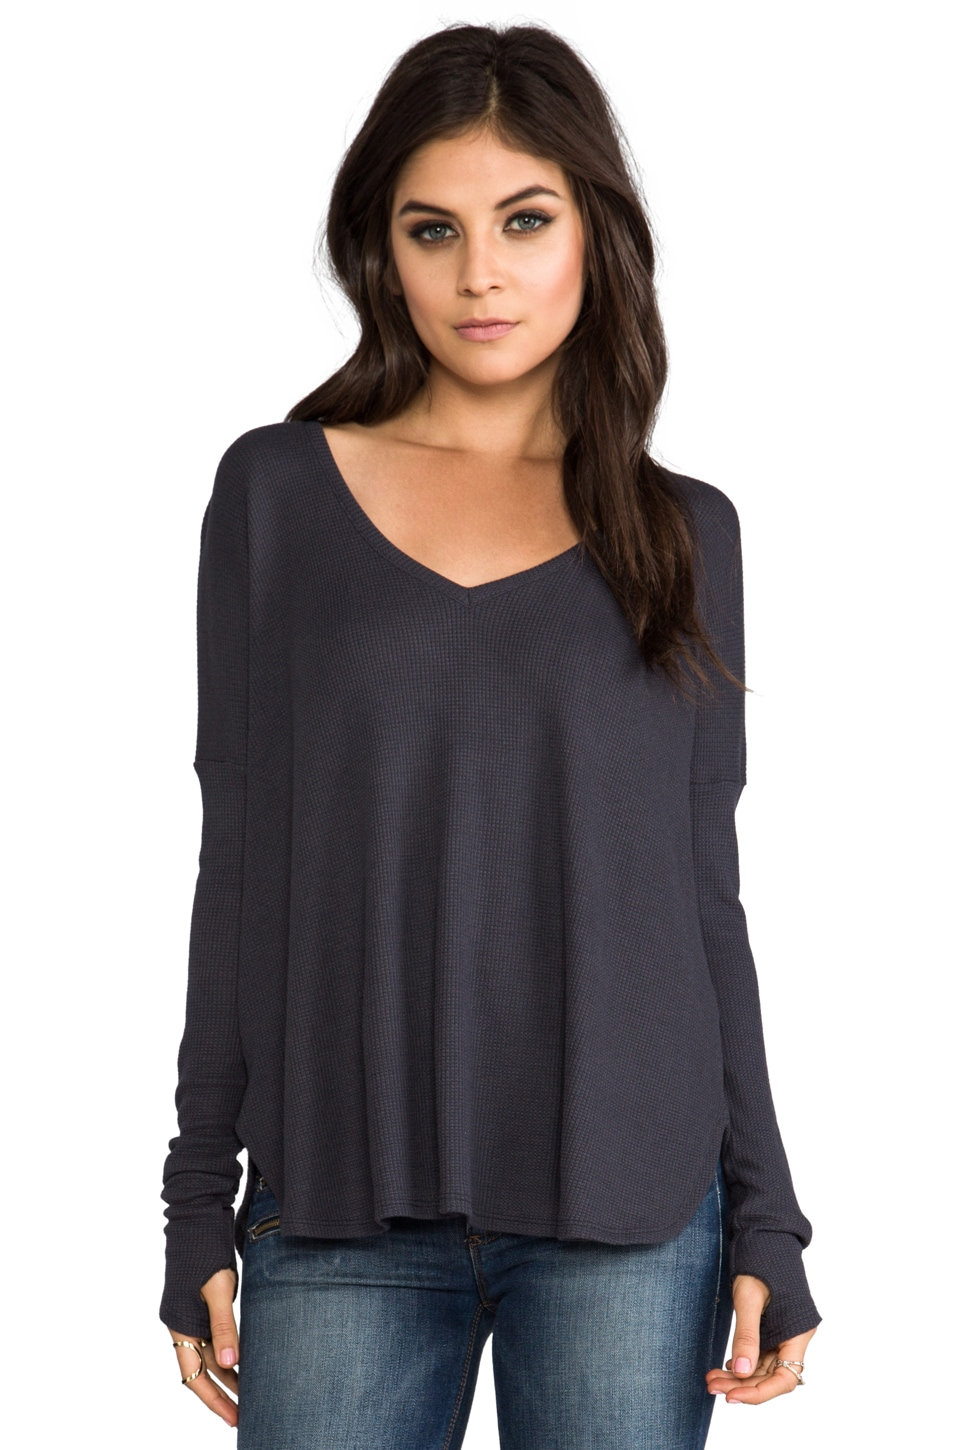 Feel the Piece Robin Thermal Top in Charcoal